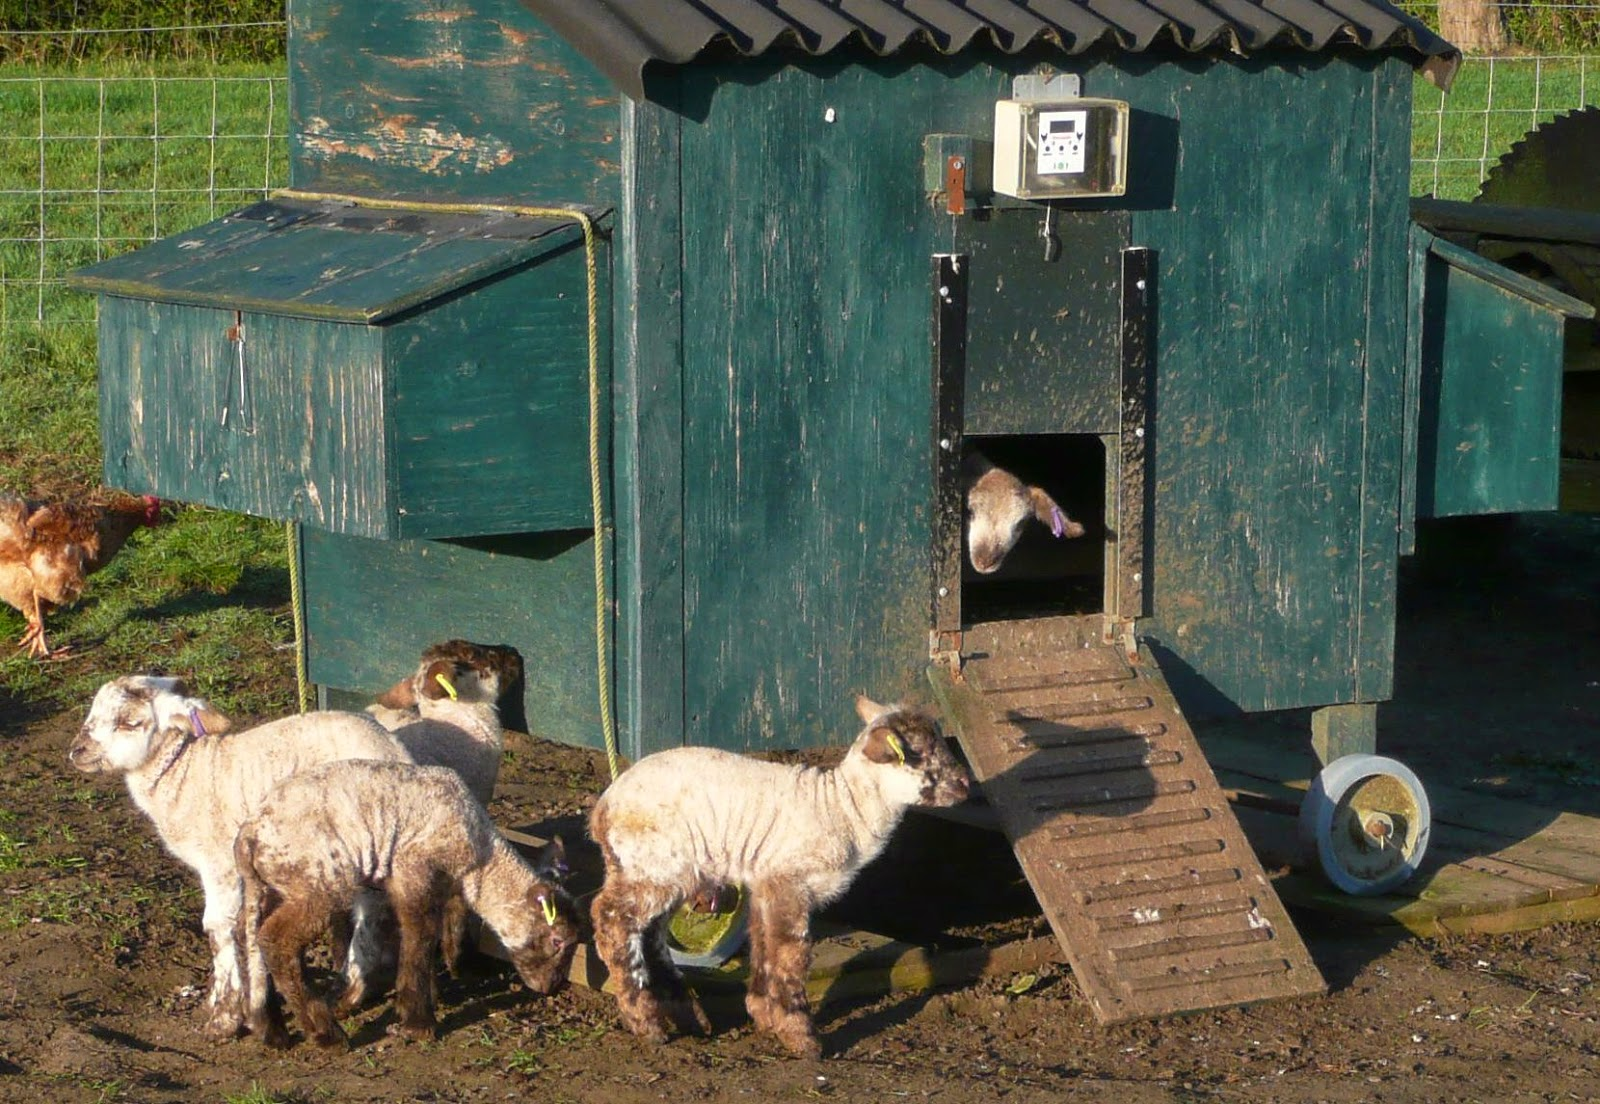 Lambs have moved into the HenSafe chicken coop! Am thinking they need their own enclosure now..... www.smallholderjournal.blogspot.com